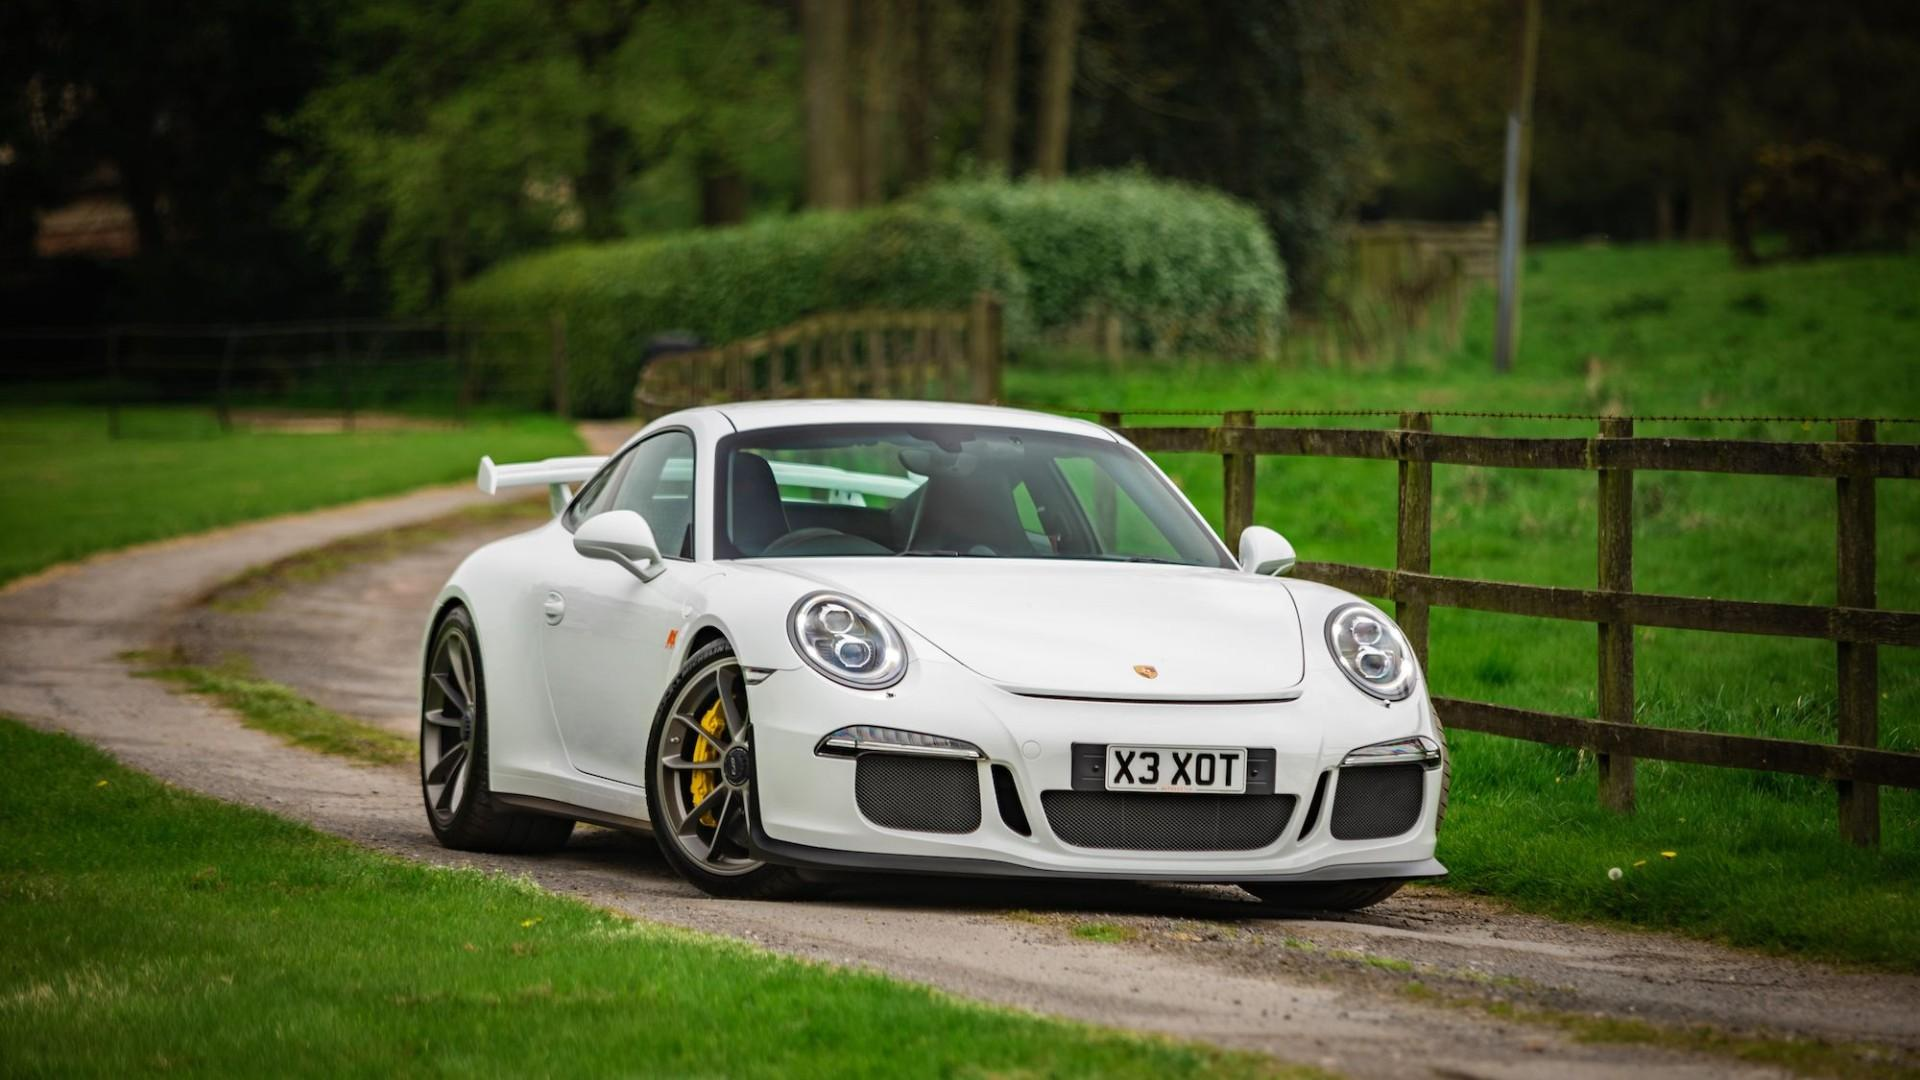 Promoted: Why a Porsche 911 GT3 is the perfect weekend car